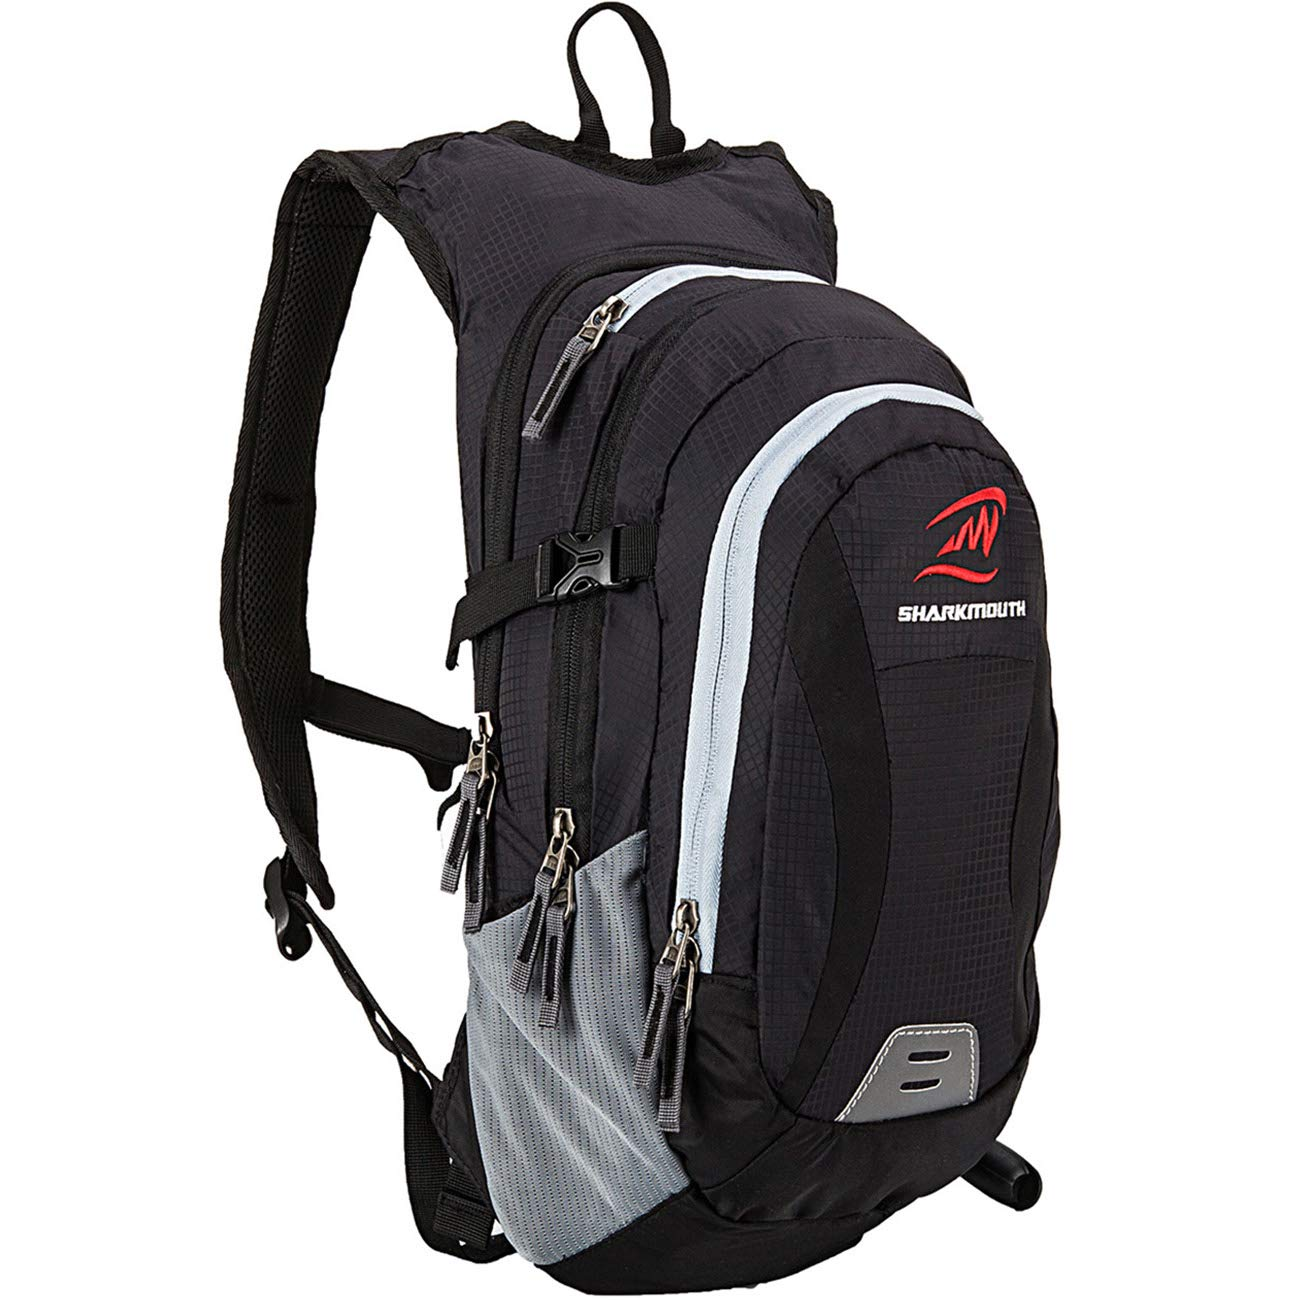 SHARKMOUTH Hydration Backpack Bladder Comfortable